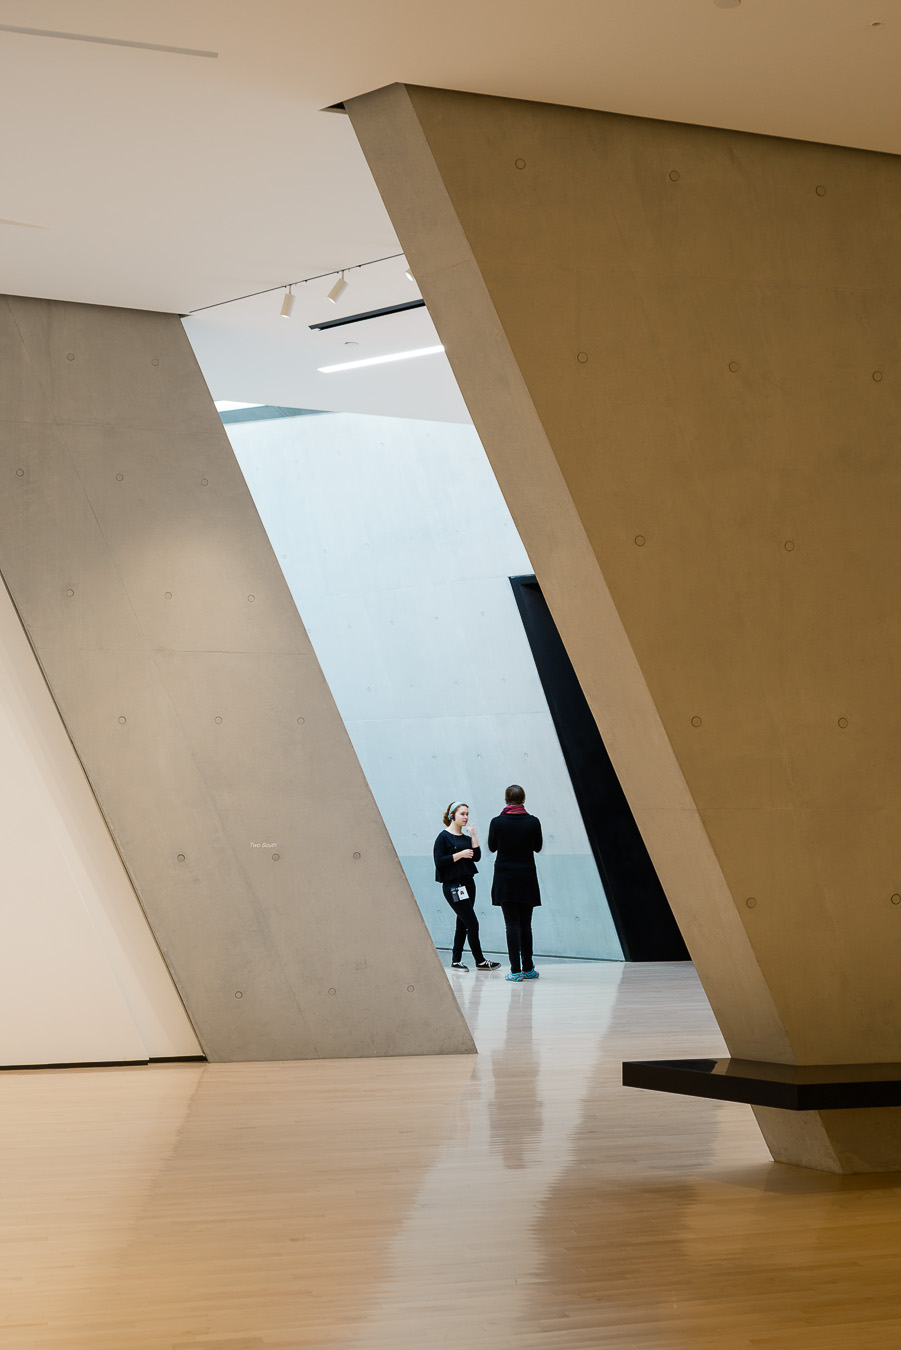 188-Zaha Hadid Broad Museum Lansing Doublespace Toronto Architectural Photography.jpg